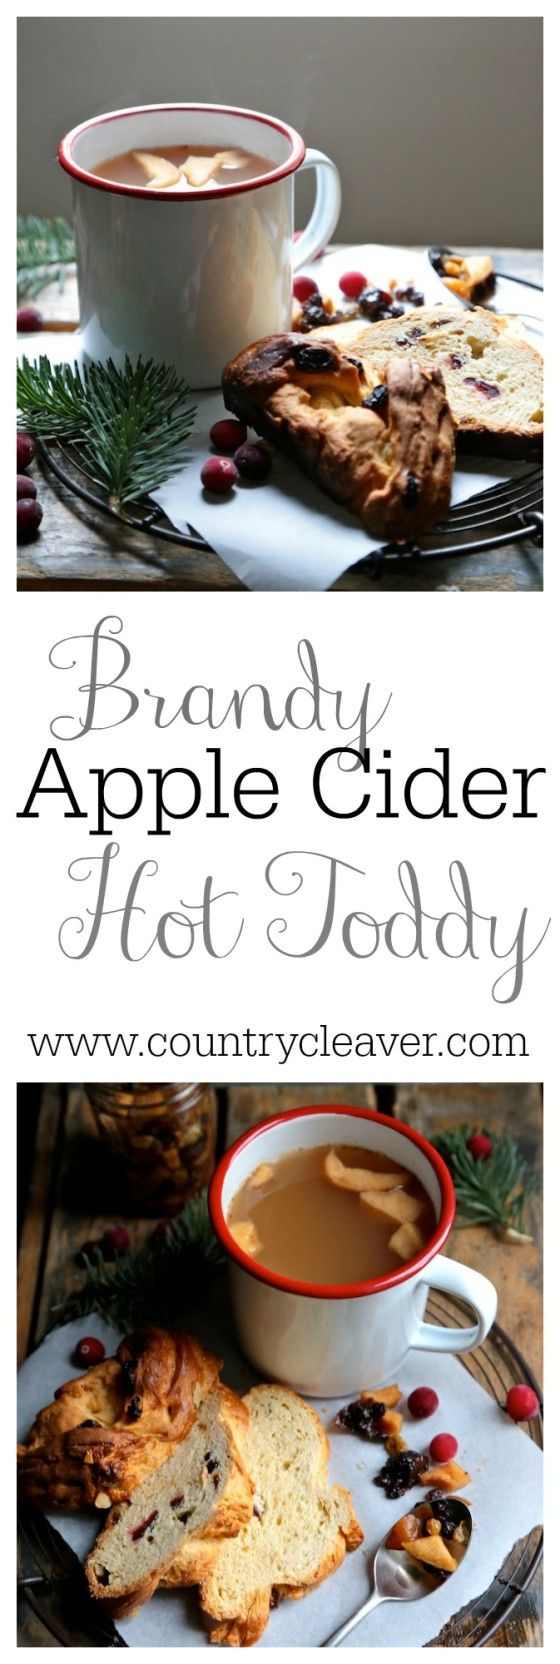 brandy apple cider hot toddy easy cocktails virgin drinks hot toddy ...